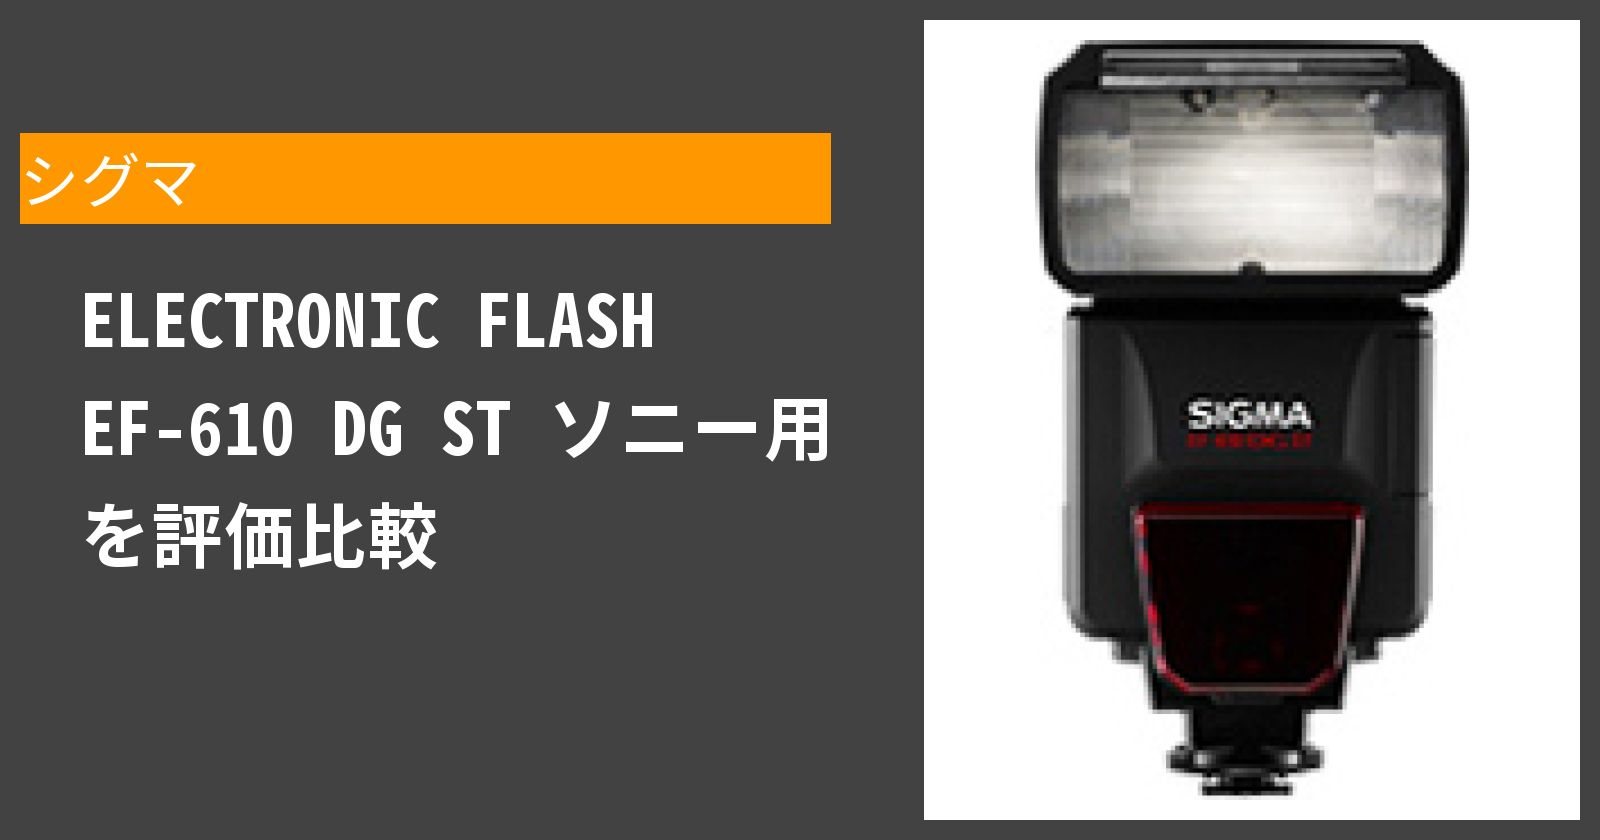 ELECTRONIC FLASH EF-610 DG ST ソニー用を徹底評価